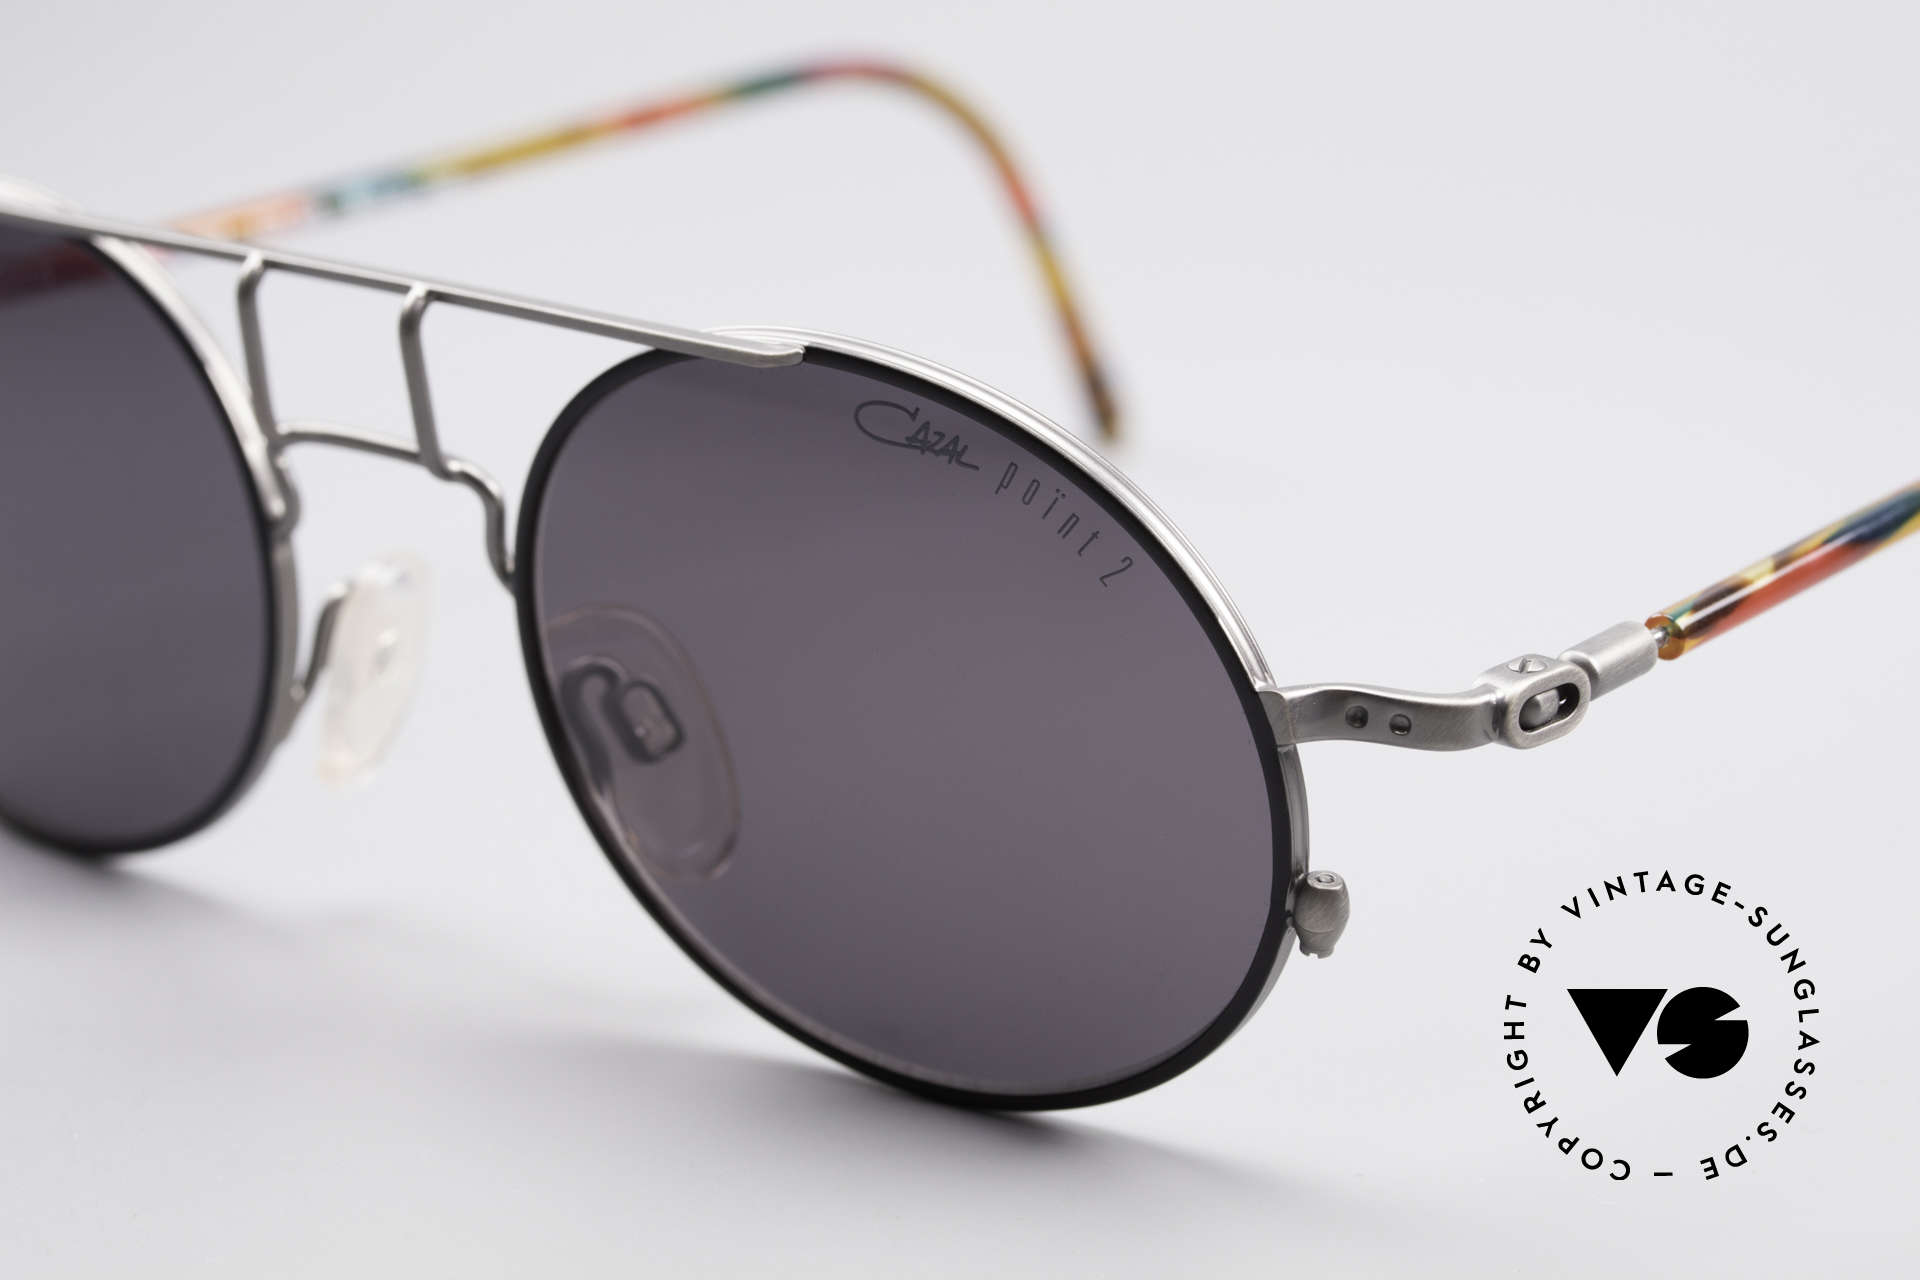 Cazal 1201 - Point 2 90's Industrial Style Shades, never worn (like all our rare vintage shades by CAZAL), Made for Men